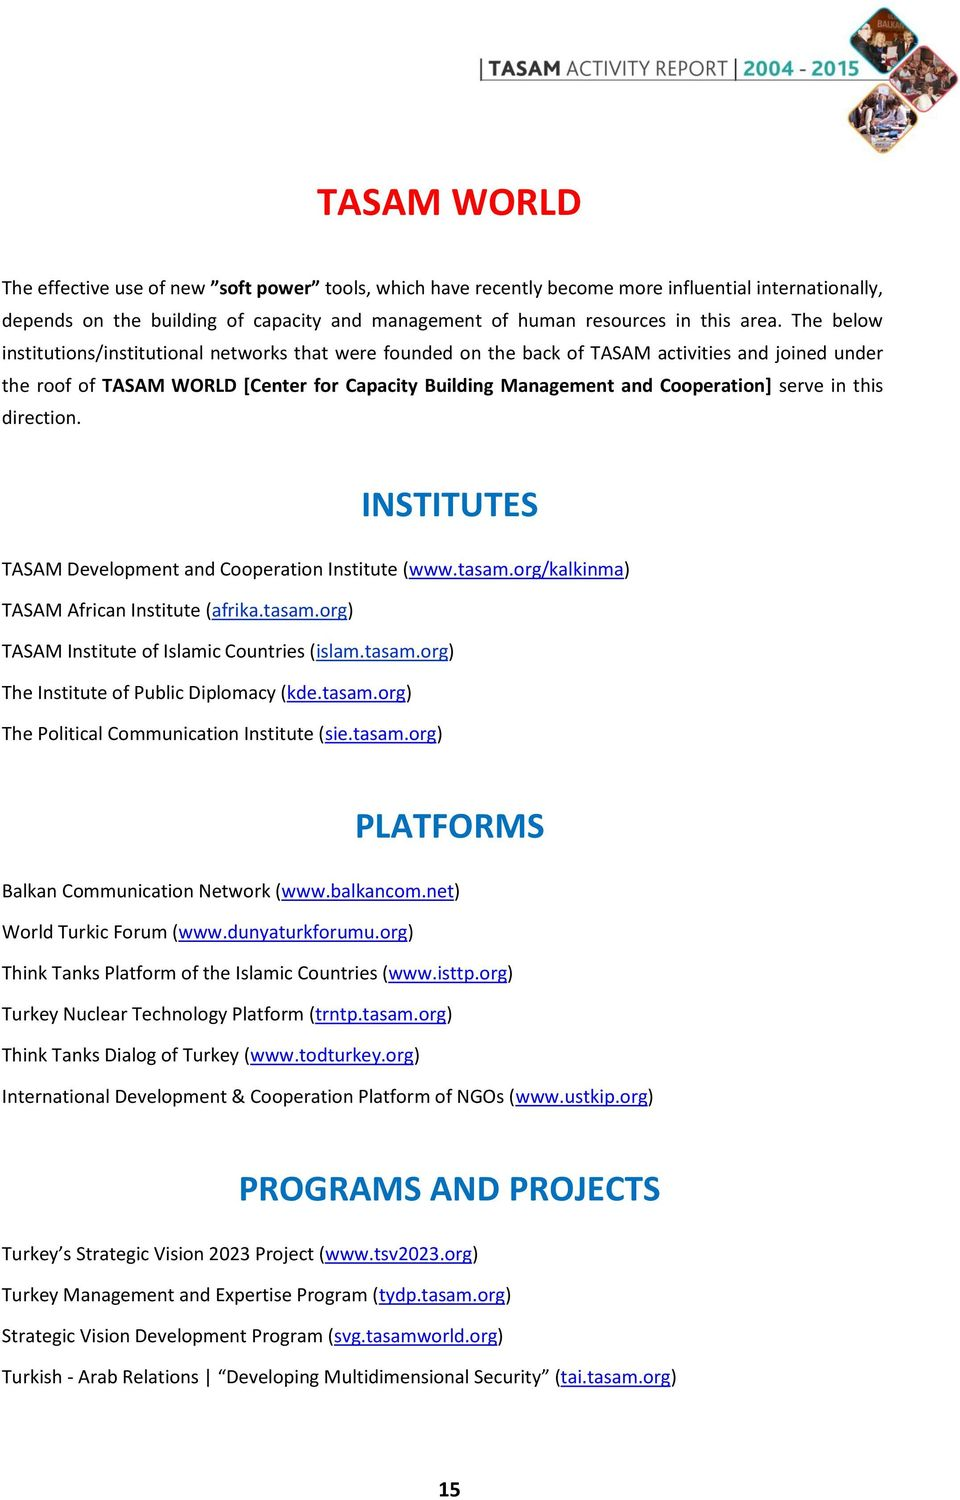 serve in this direction. INSTITUTES TASAM Development and Cooperation Institute (www.tasam.org/kalkinma) TASAM African Institute (afrika.tasam.org) TASAM Institute of Islamic Countries (islam.tasam.org) The Institute of Public Diplomacy (kde.